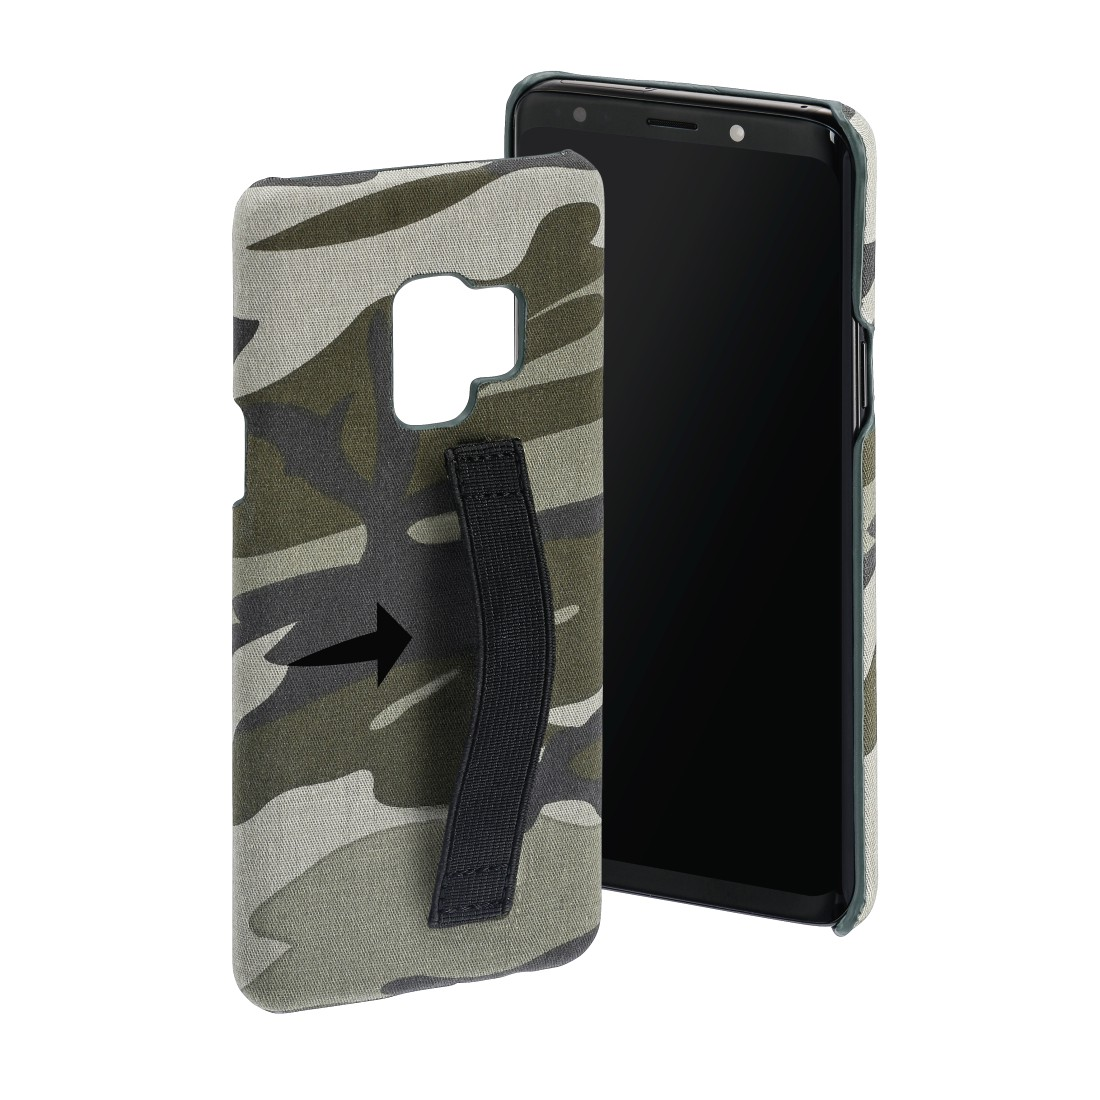 "abx High-Res Image - Hama, Coque de protection ""Camouflage Loop"" pour Samsung Galaxy S9, verte"